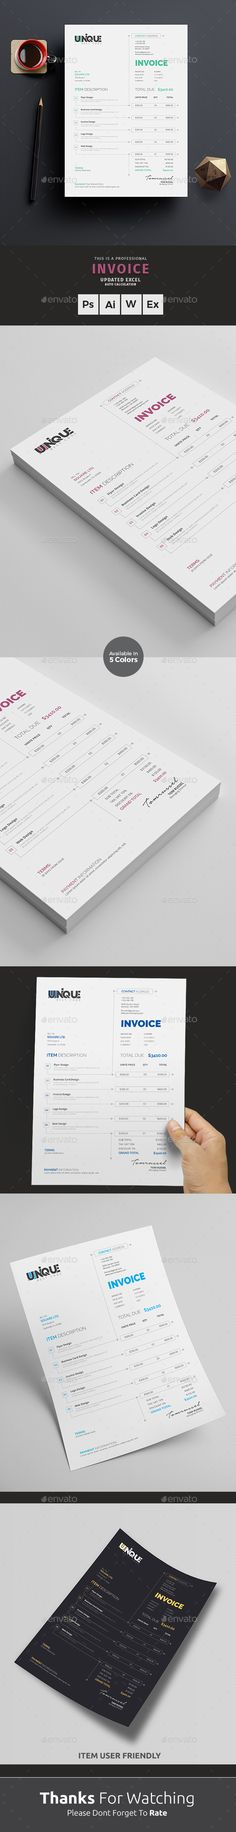 MS Word Invoice Template Template, Business proposal and Proposal